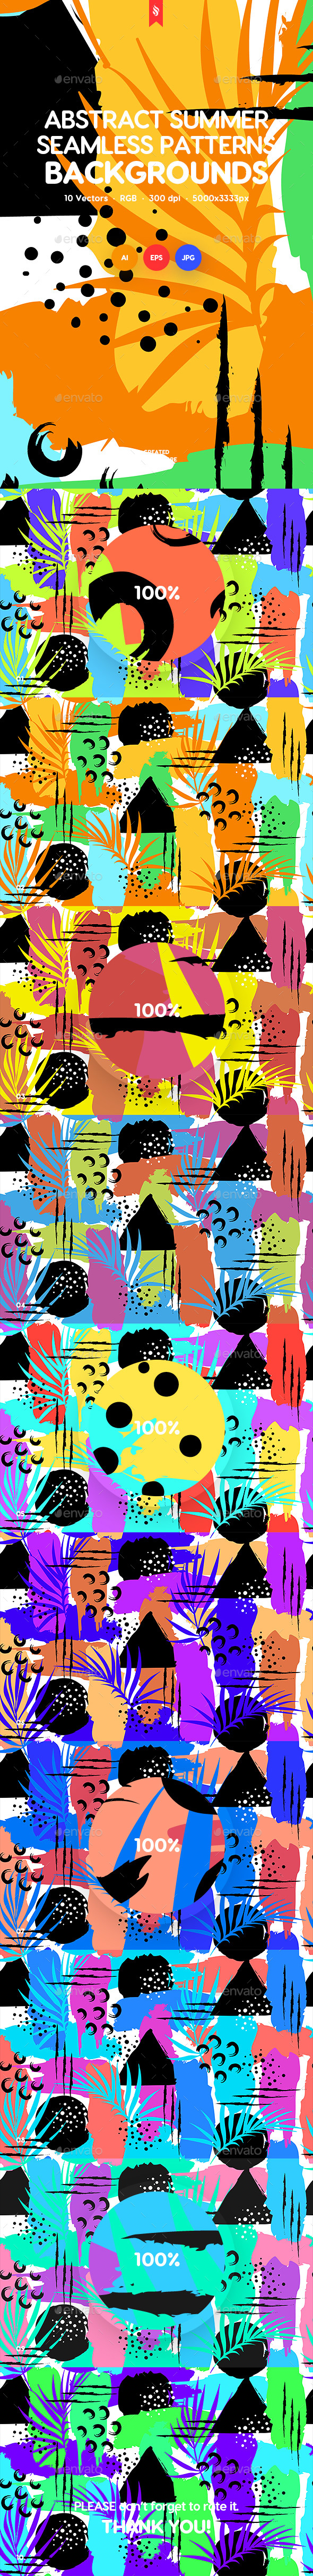 Abstract Summer Seamless Patterns / Backgrounds - Backgrounds Graphics